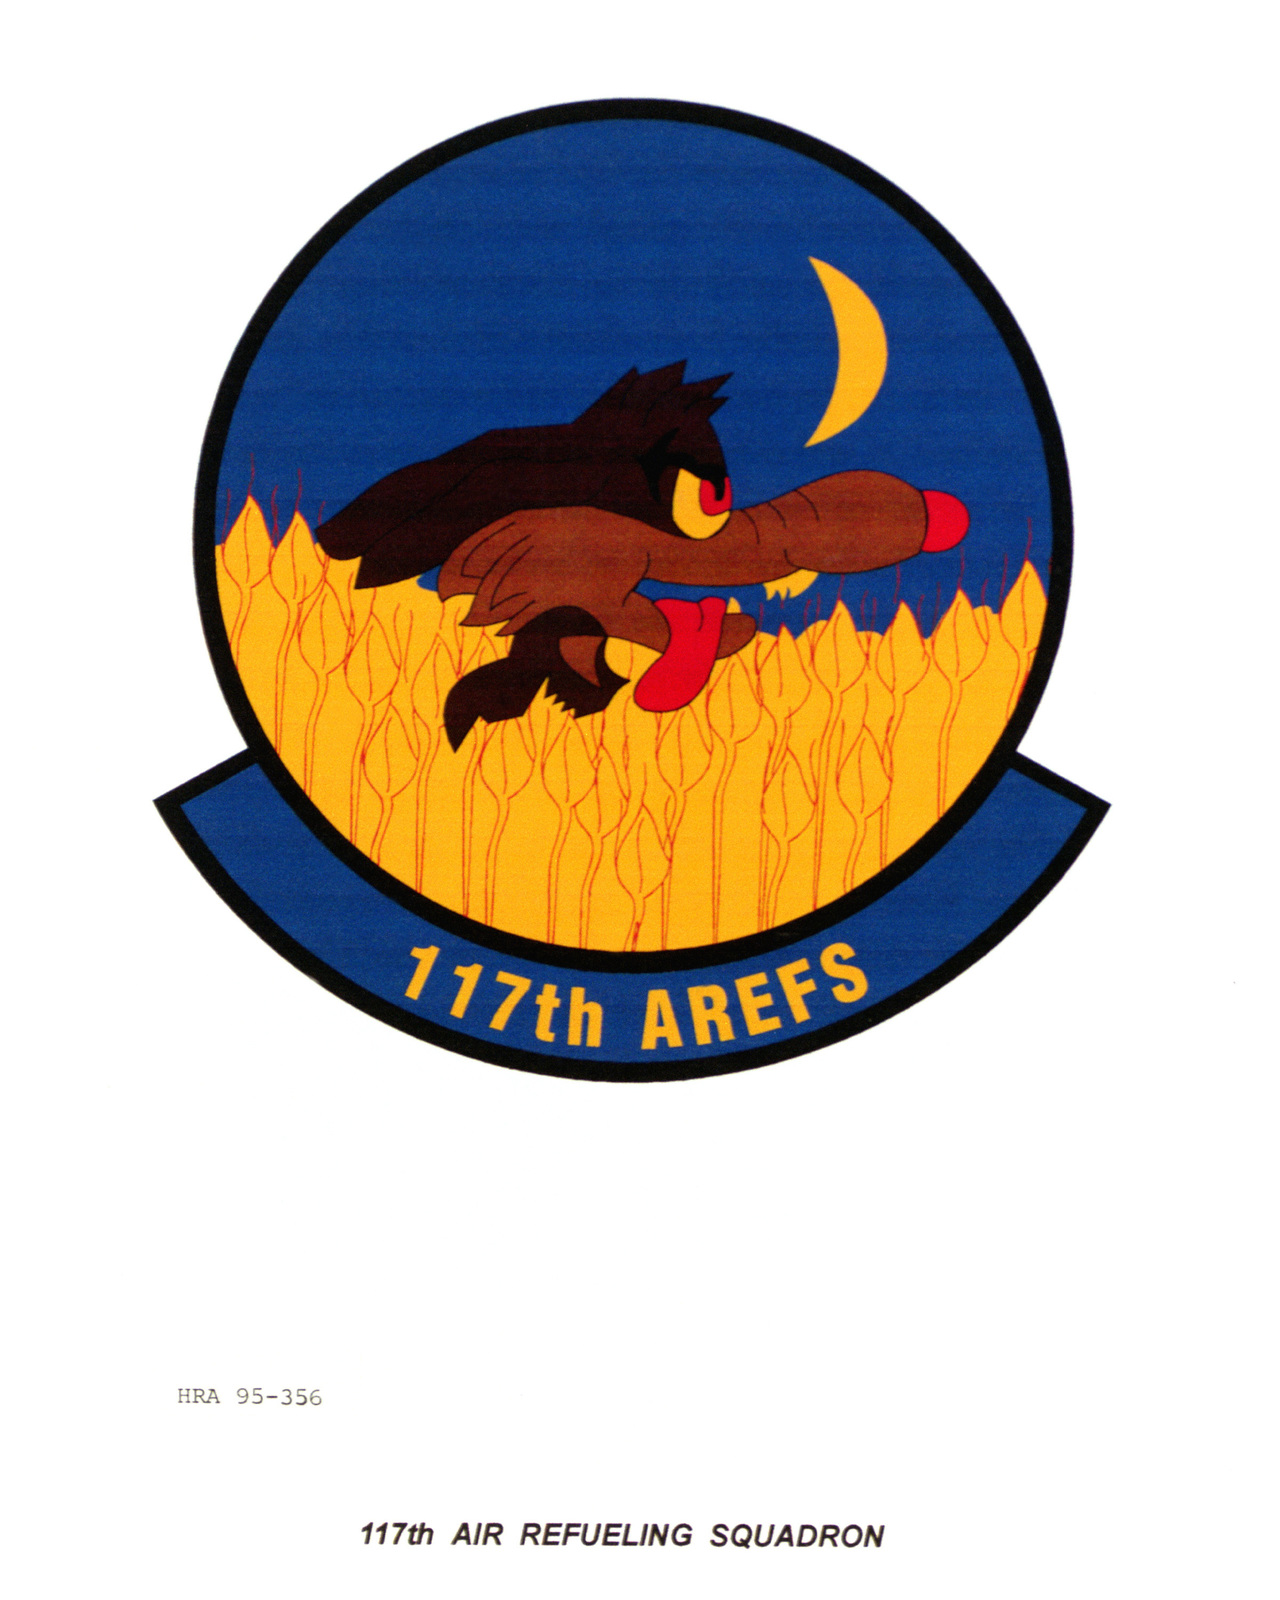 Approved Insignia for the 117th Air Refueling Squadron Exact Date Shot Unknown